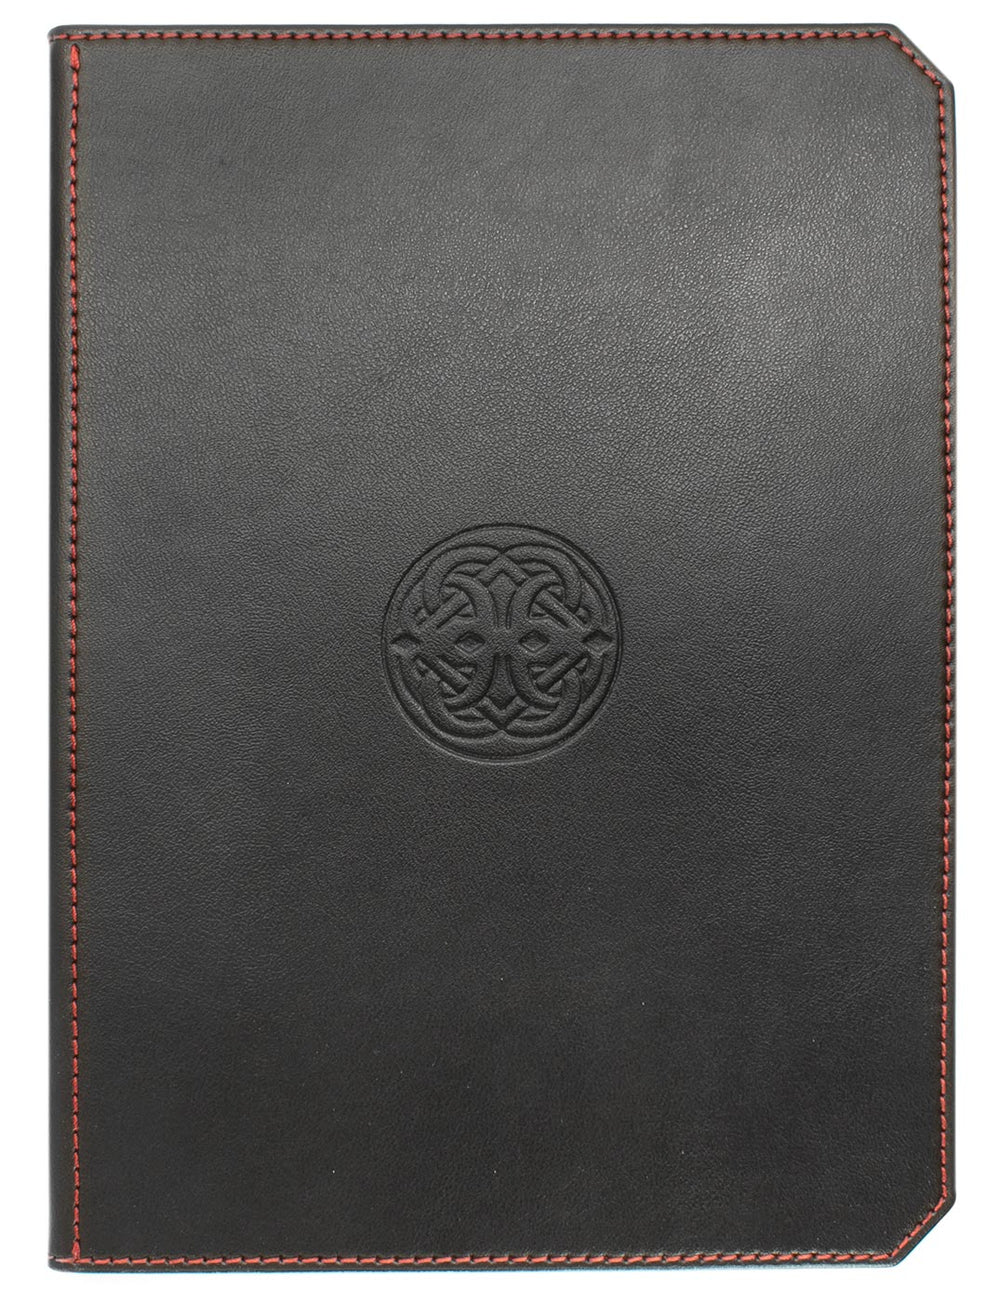 Franklin Christoph A4 Firma-Flex Journal Notebook